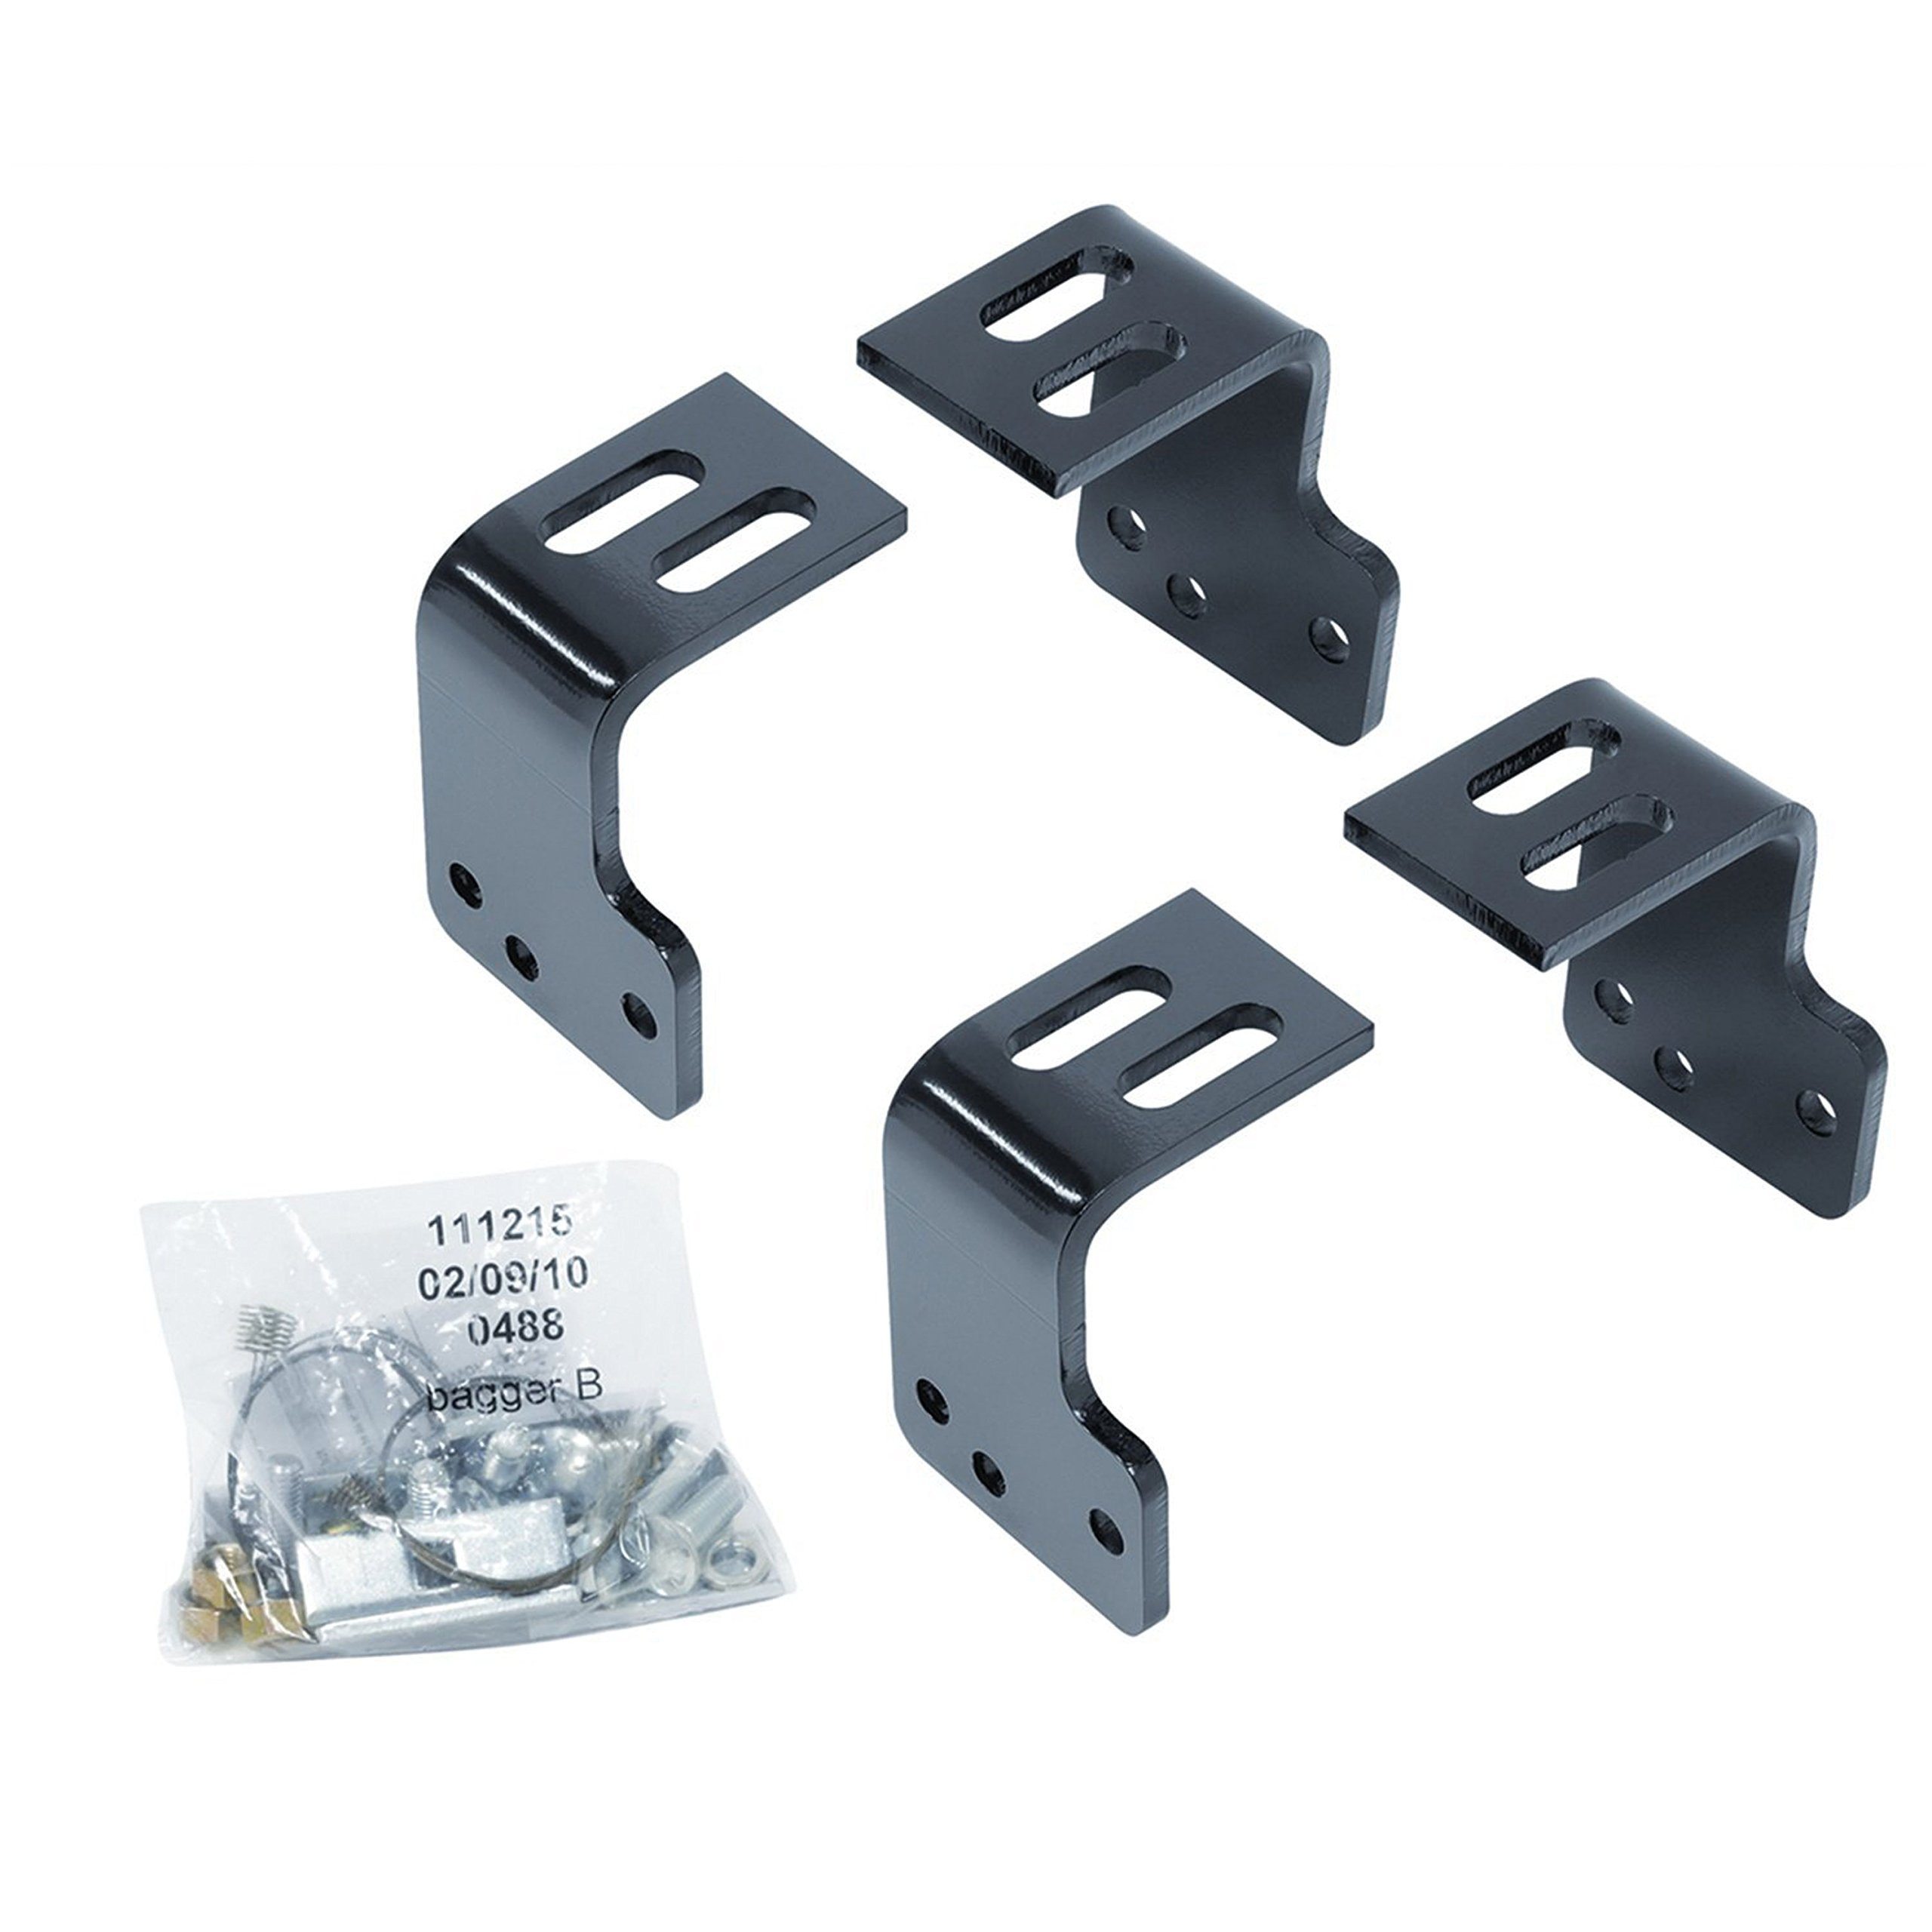 Reese 58426 Fifth Wheel Trailer Hitch Adapter Kit for #30035 and #30095-Ford F-150 '04-'14 by Reese